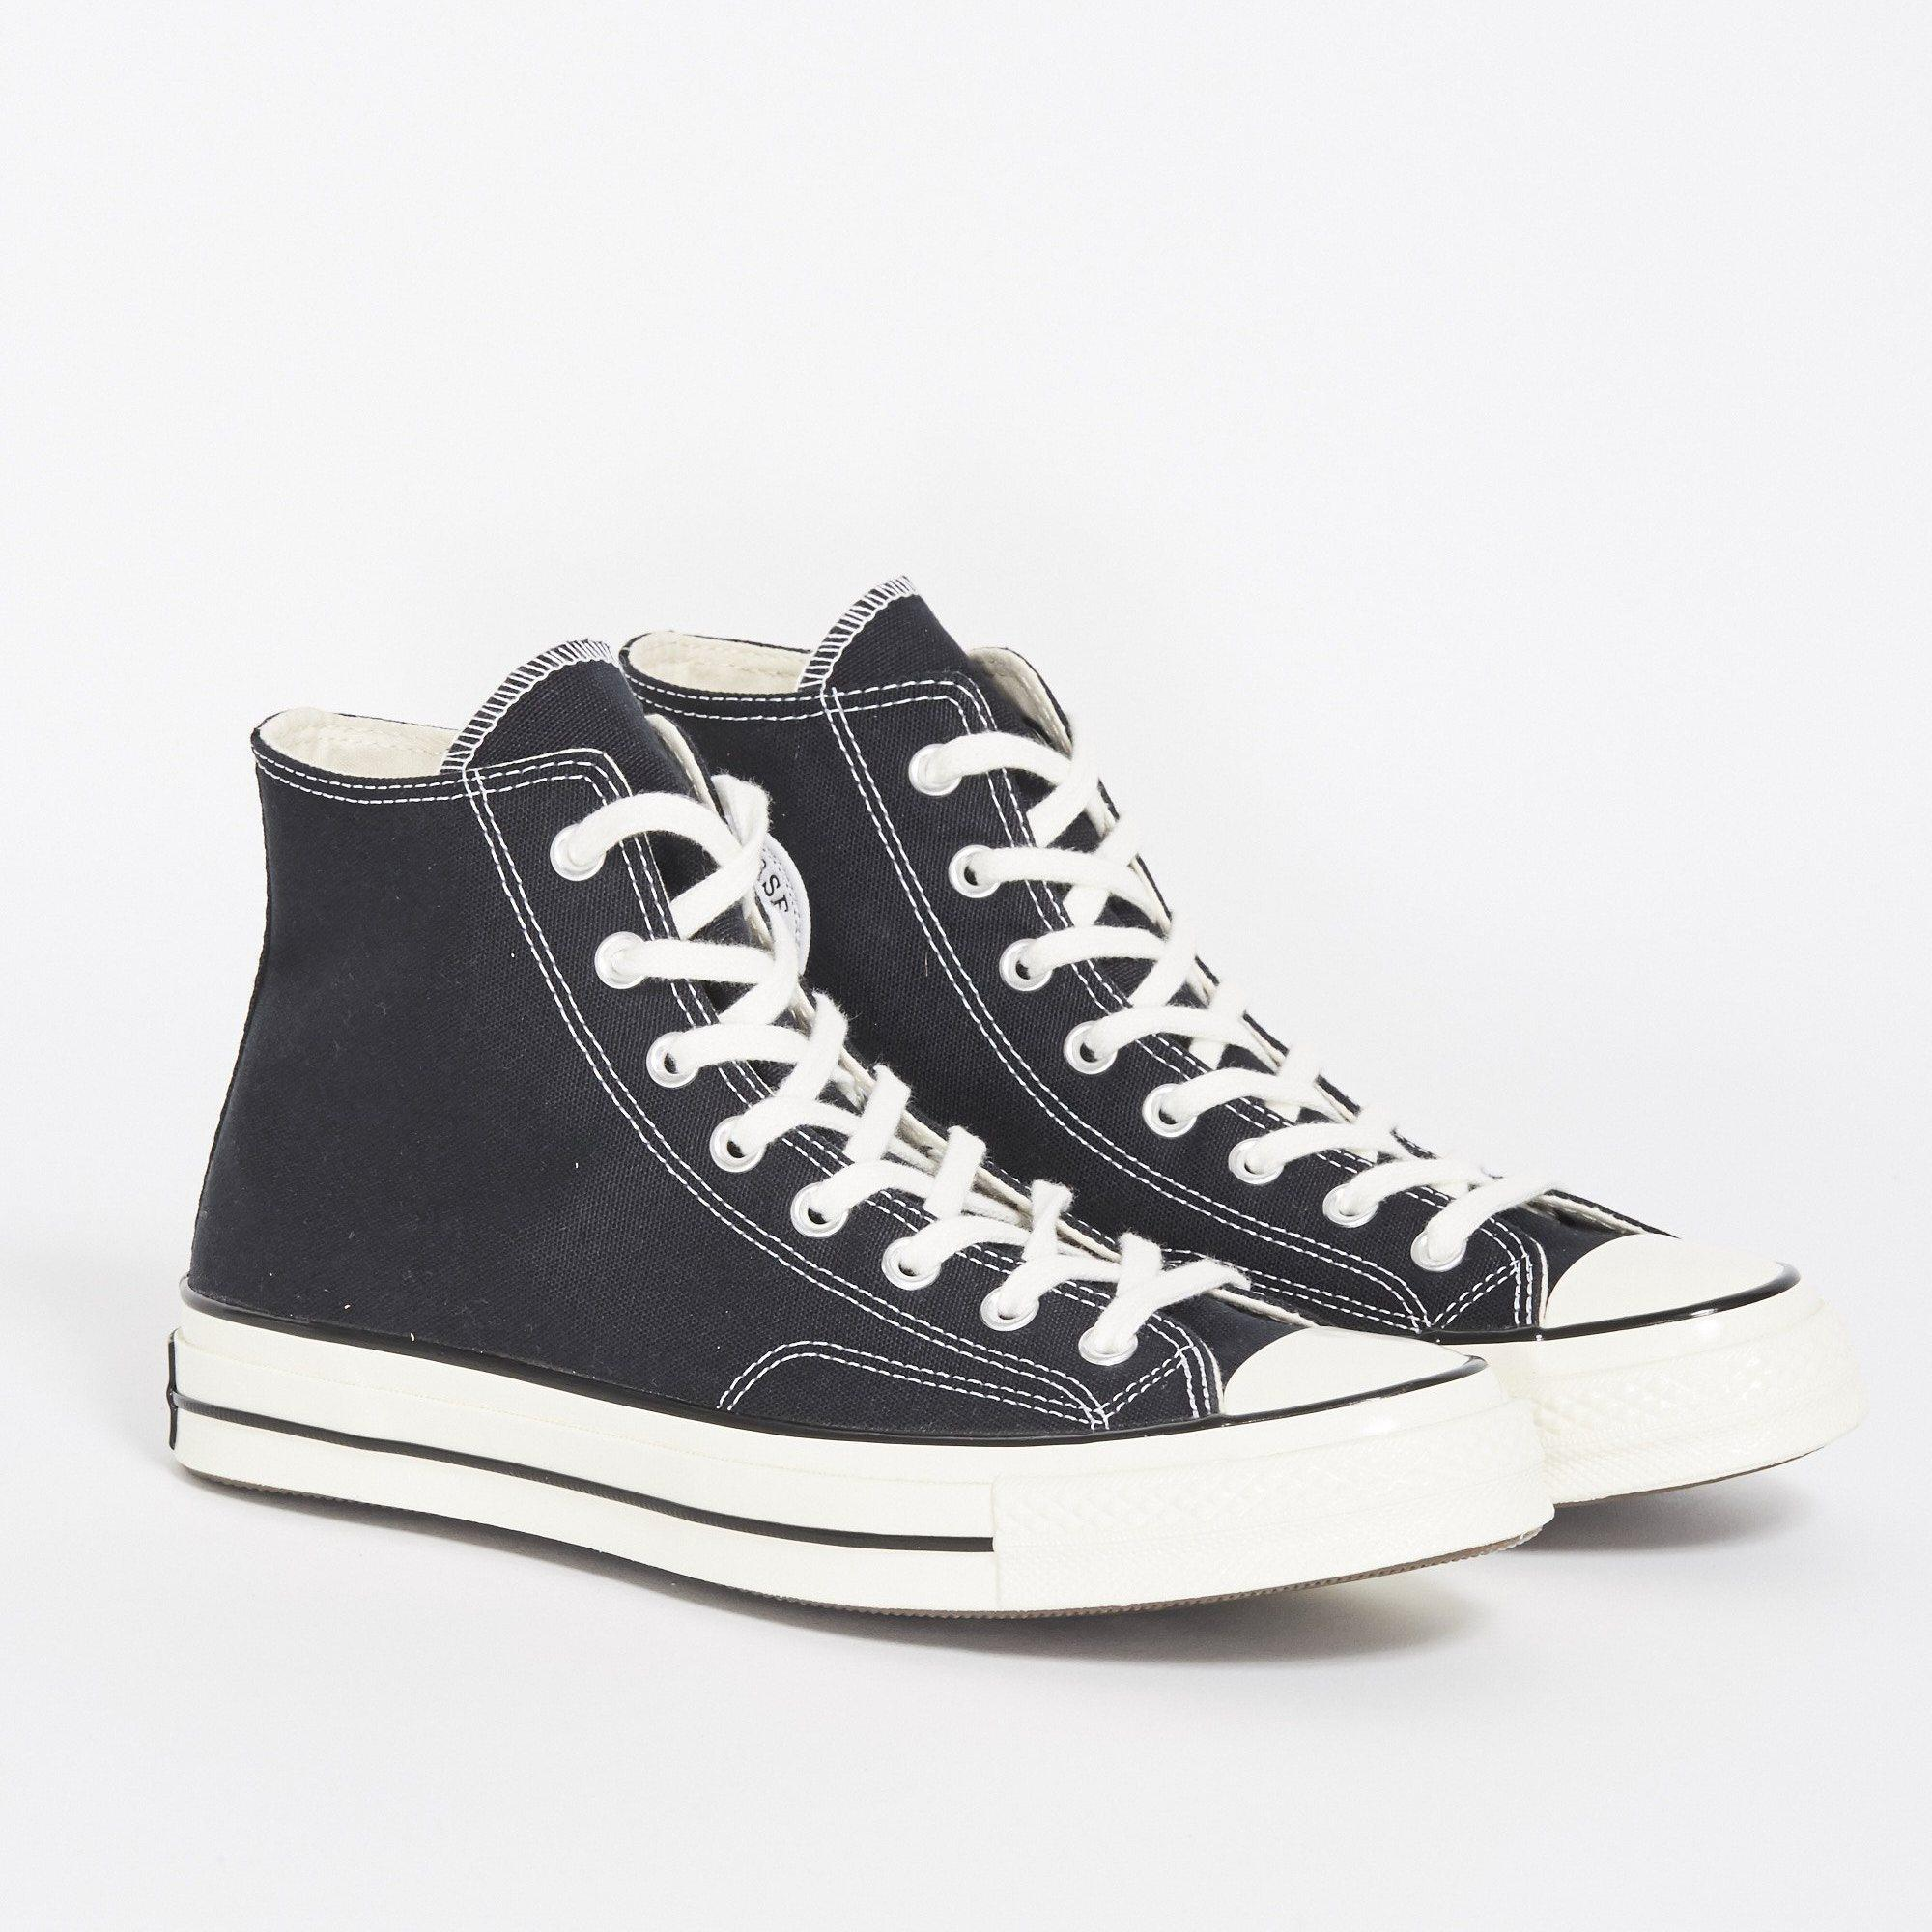 Converse Chuck Taylor 70s Canvas Hi - Black White 05db7ab754